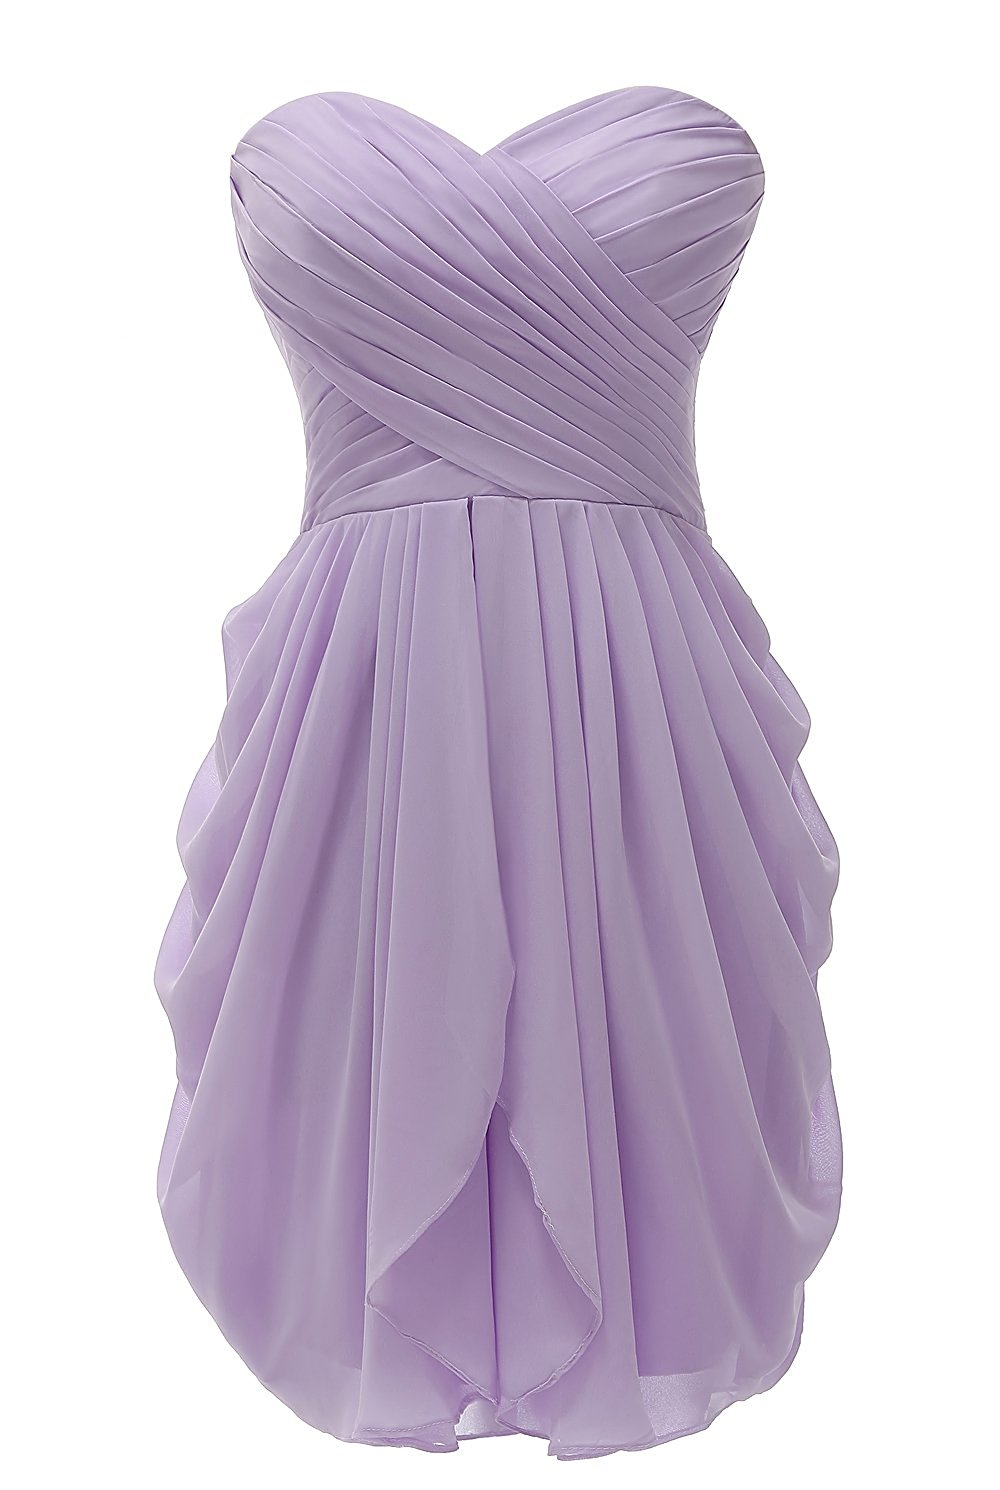 Popular baby blue short bridesmaid dresses buy cheap baby blue sweetheart strapless pleat lilac bridesmaid dresses short coral chiffon bridesmaid dresses baby blue for beach wedding ombrellifo Gallery